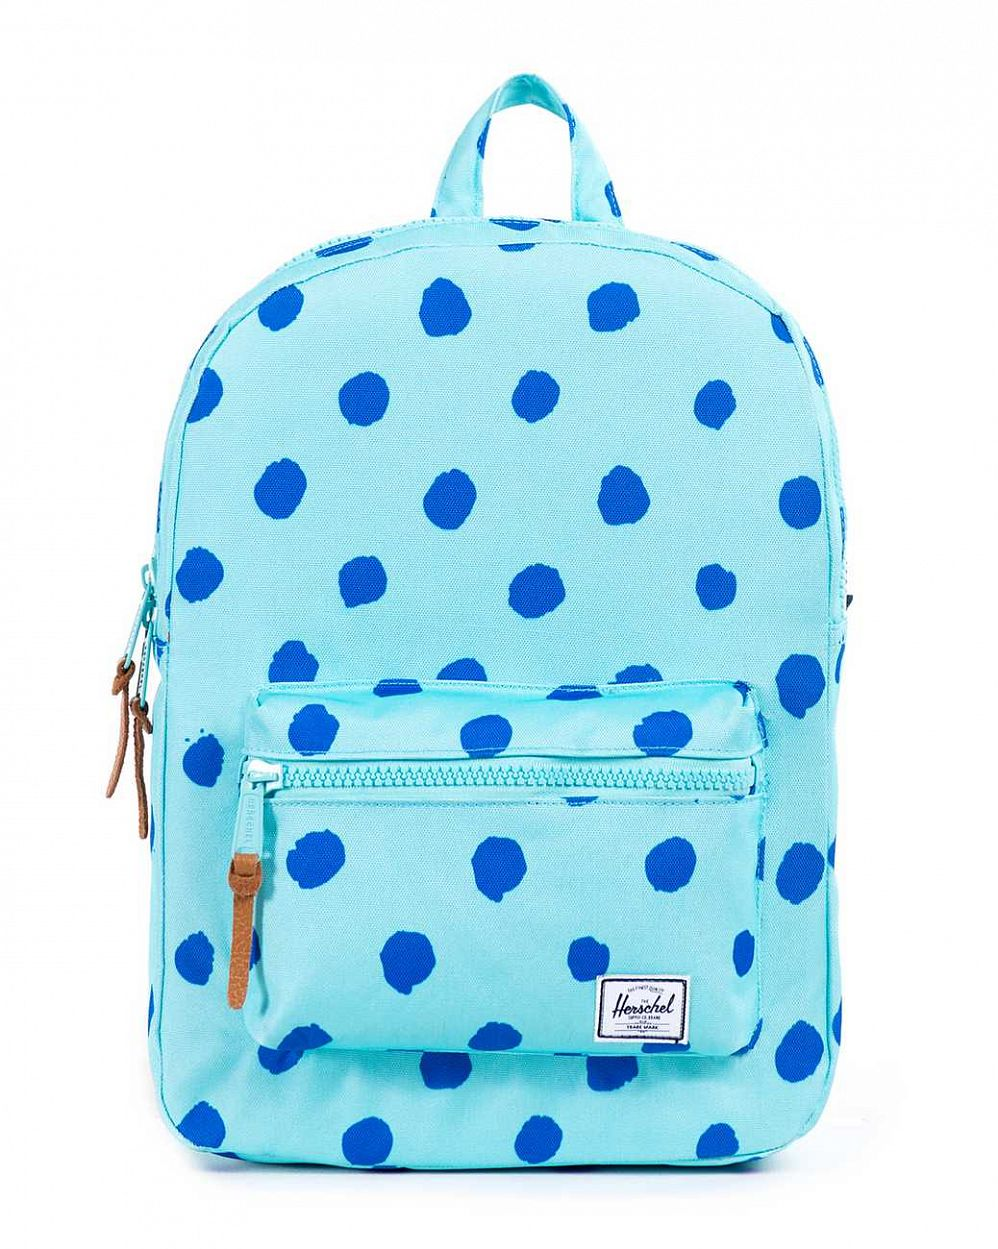 купить Рюкзак Herschel Settlement Youth Teal Cobalt Polka Dot в Москве